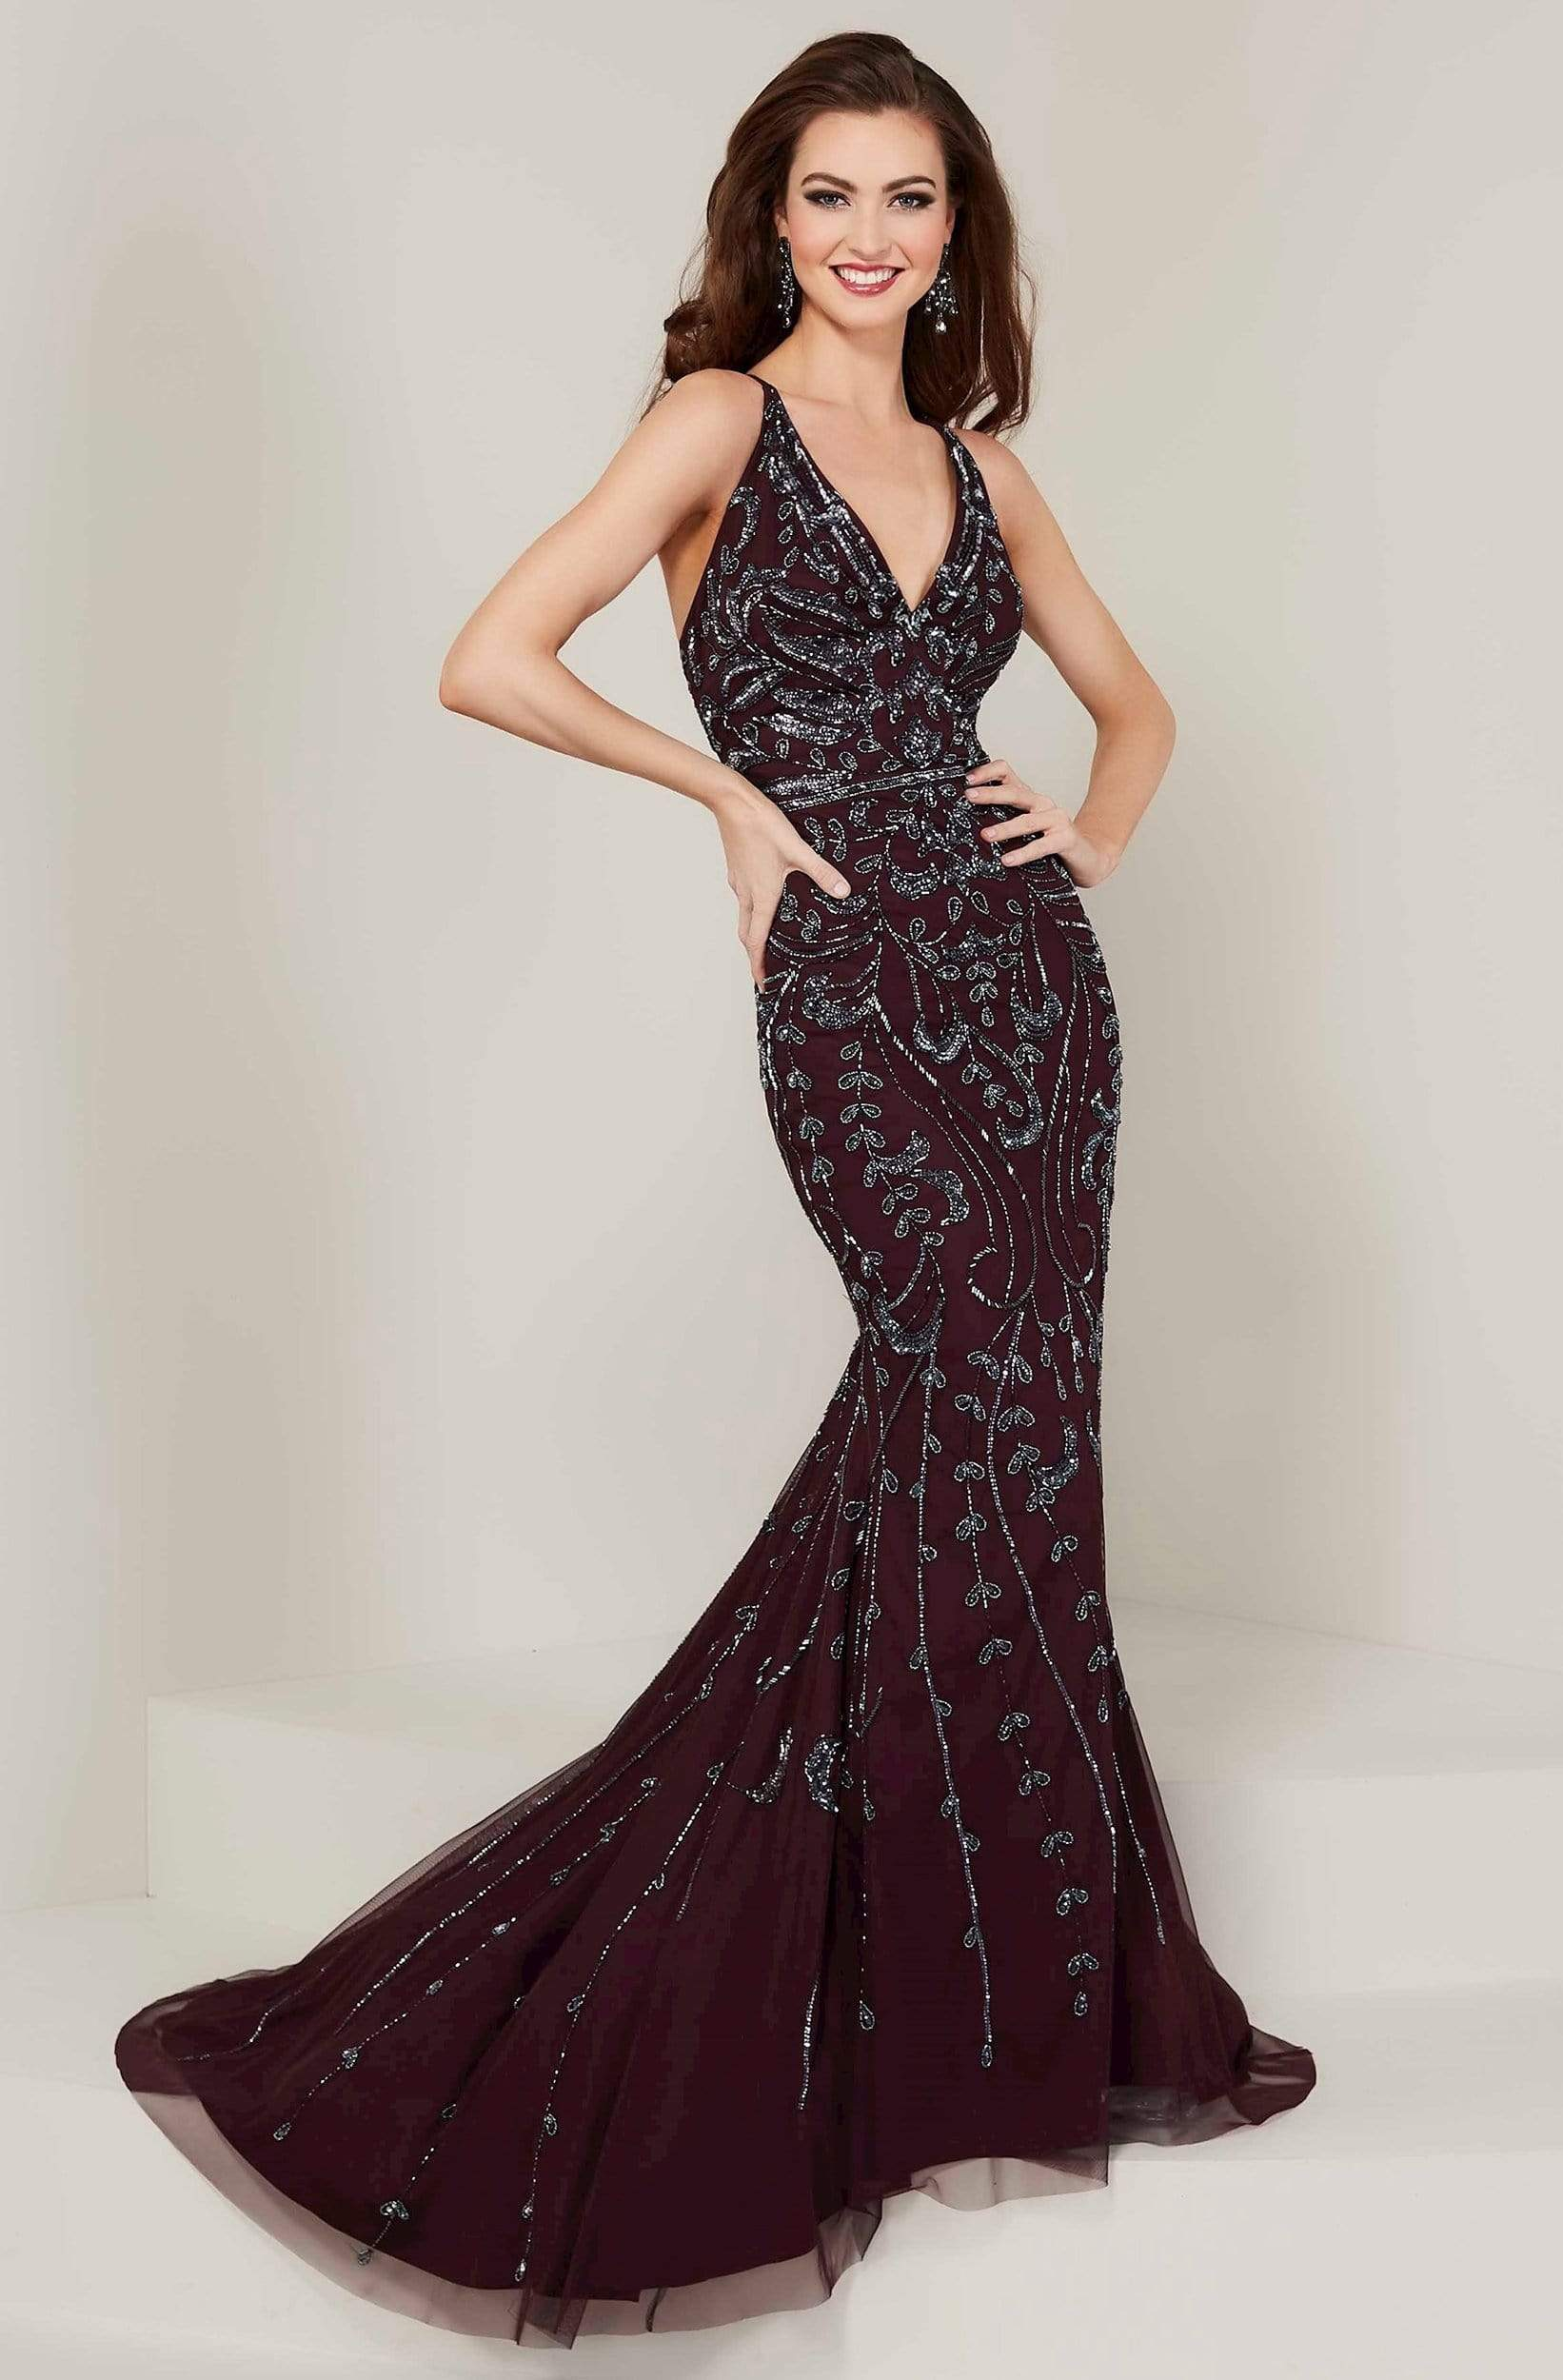 Tiffany Designs - 16349 Strappy Beaded V-Neck Mermaid Gown from Tiffany Designs